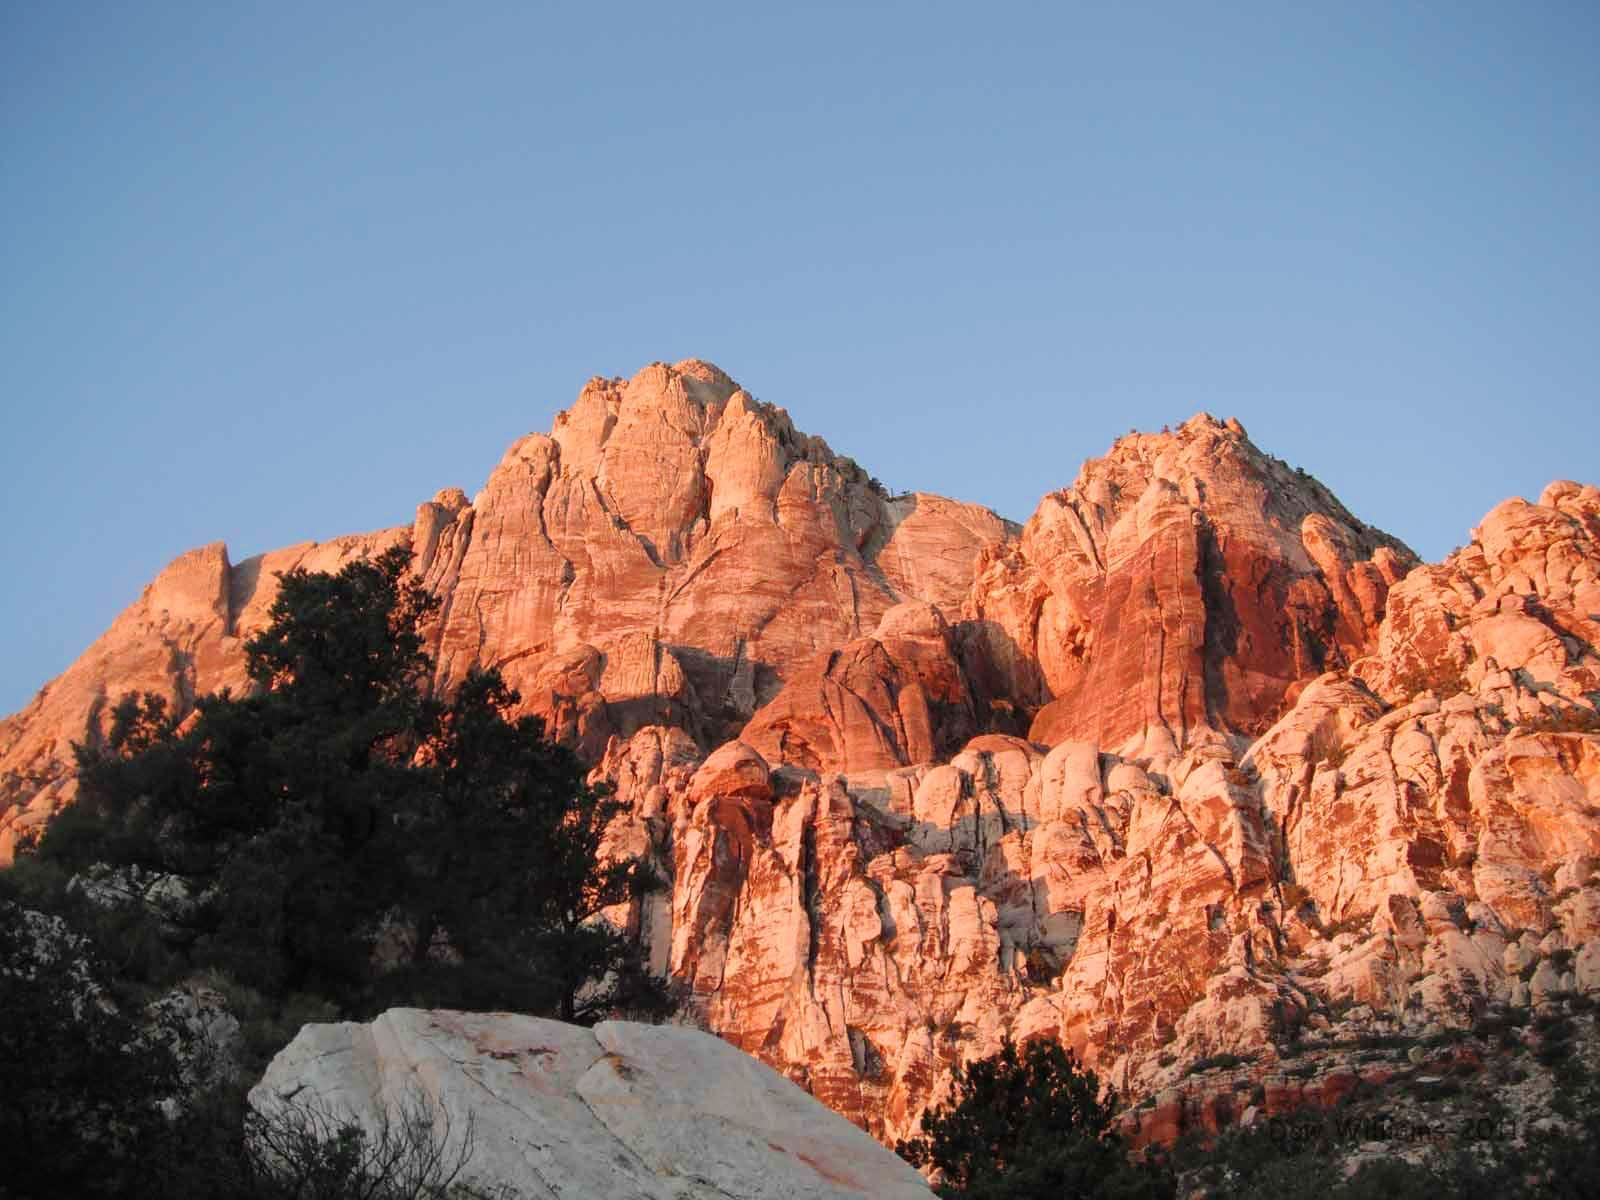 Cinnamon Hedgehog, 5.10a, 6 Pitches